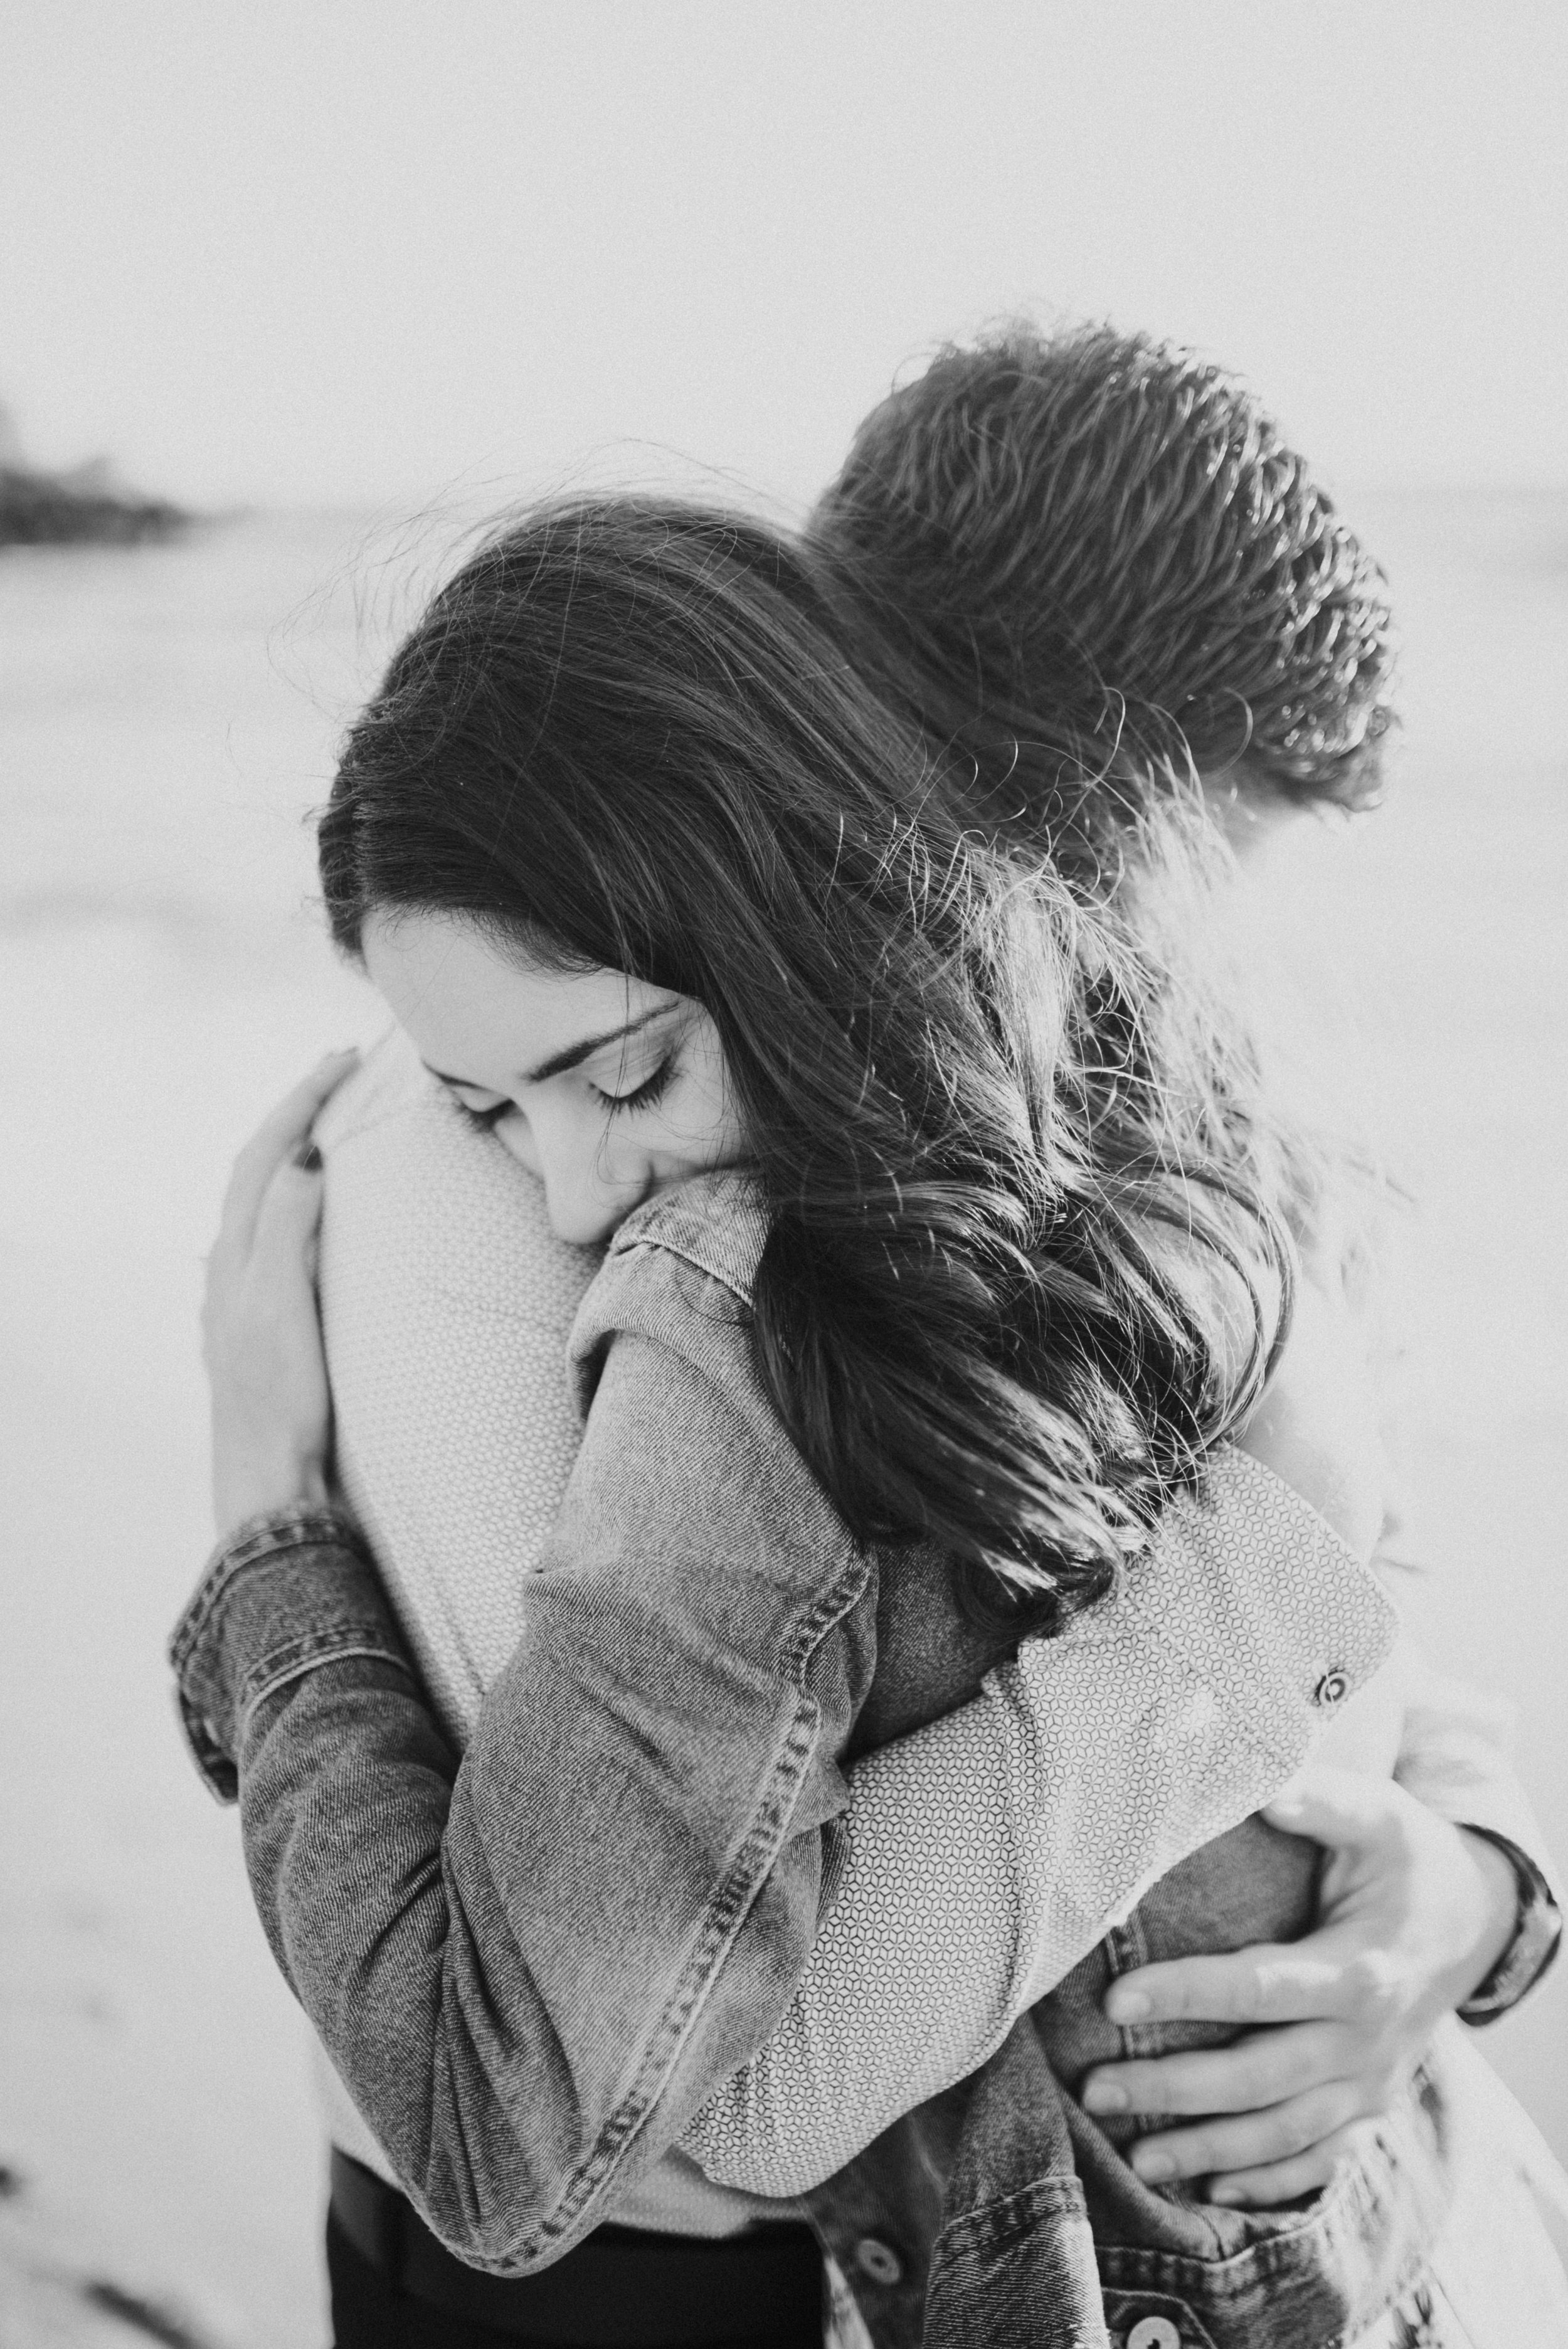 malta wedding photographer, malta wedding, malta wedding vanue, malta engagement shoot, black and white image couple hugging.jpg